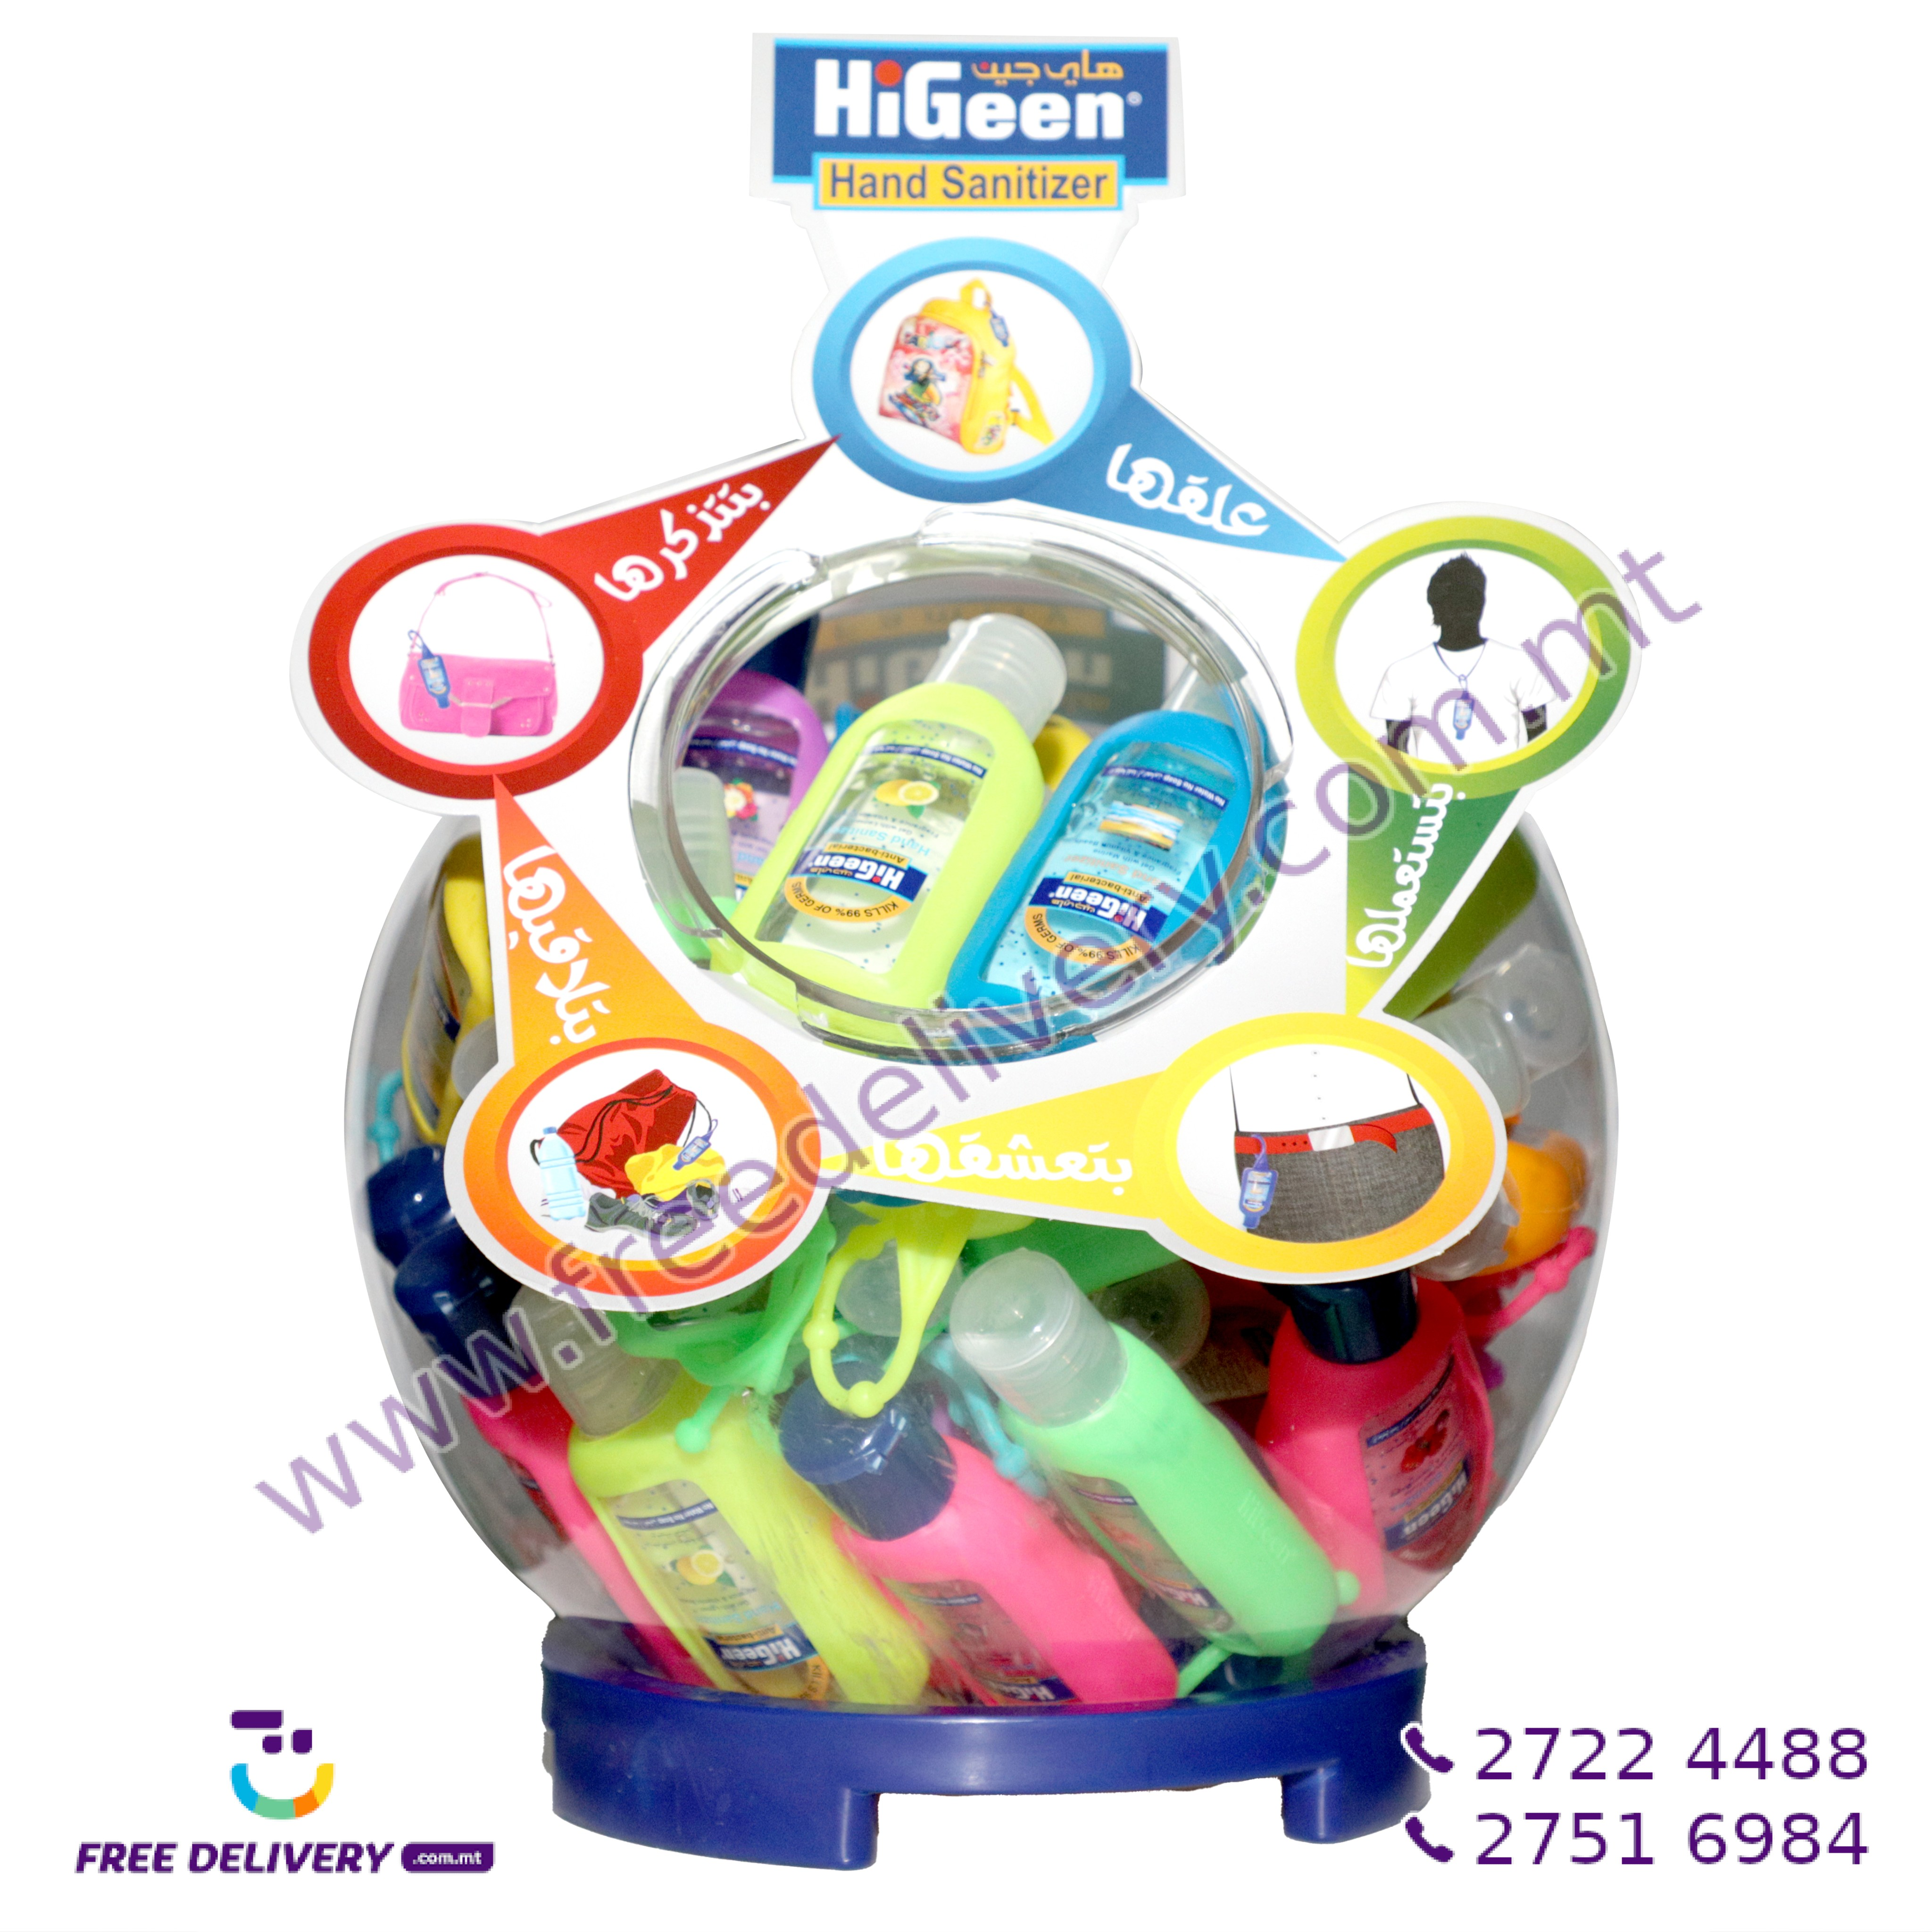 HIGEEN ANTIBACTERIAL HAND SANITIZER 44PCS WITH ACRYLIC BALL HOLDER 50ML HI002762